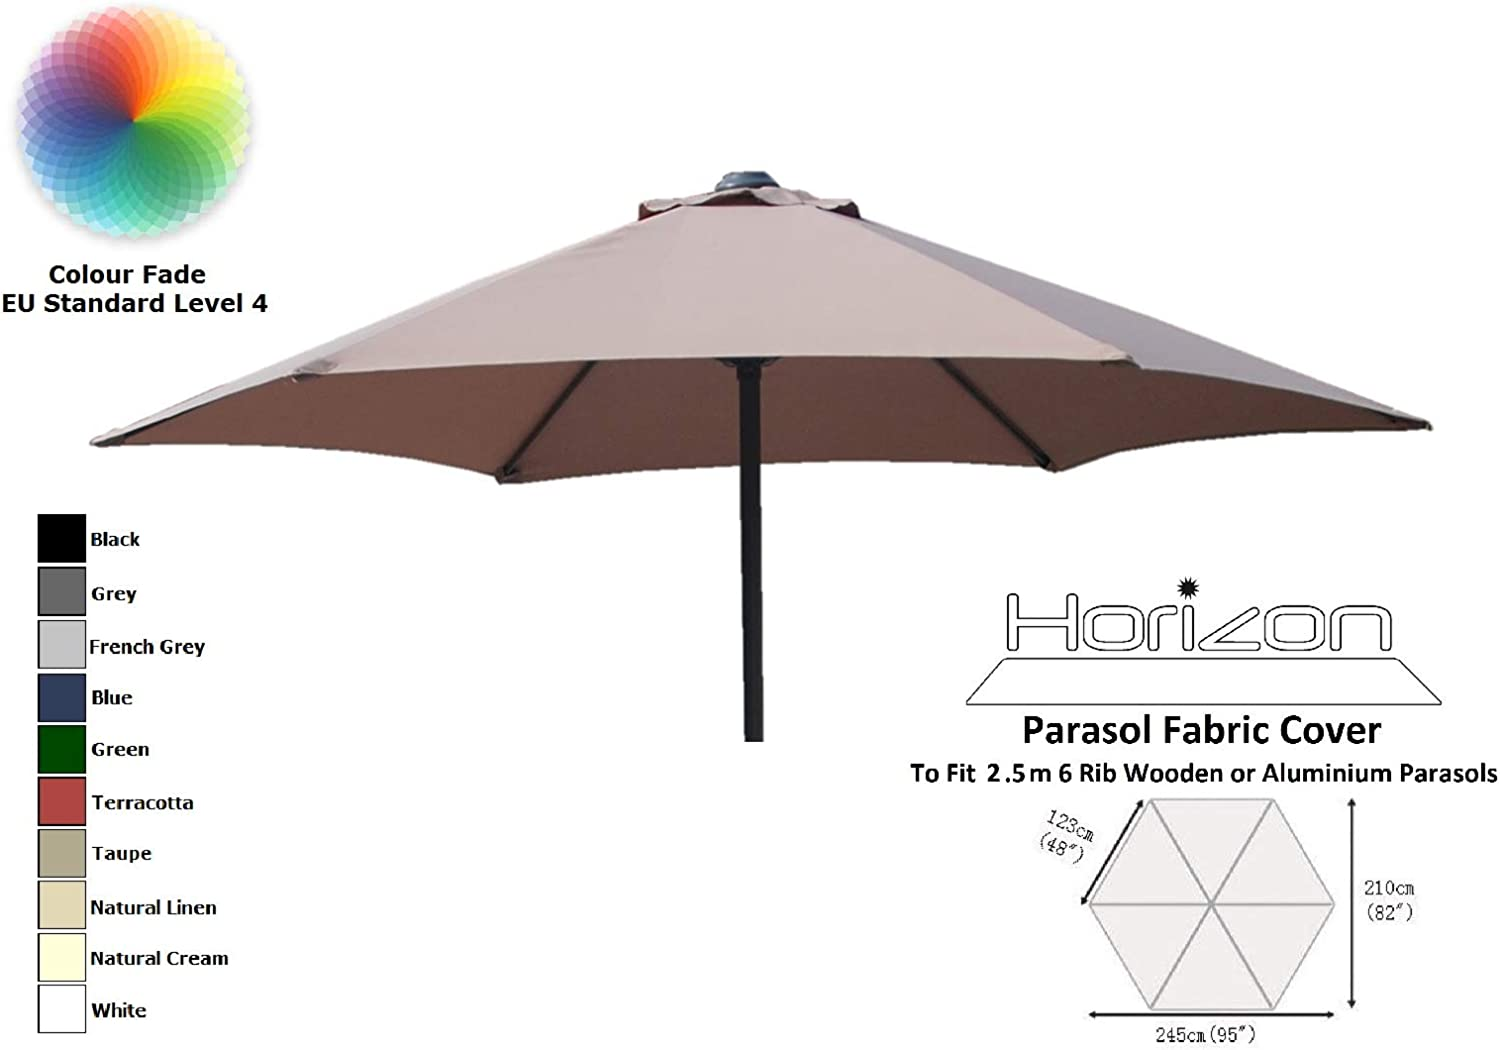 TFS Replacement Parasol Fabric Canopy for Standard Cantilever /& Balcony Parasols 2.5m 6arm, Green